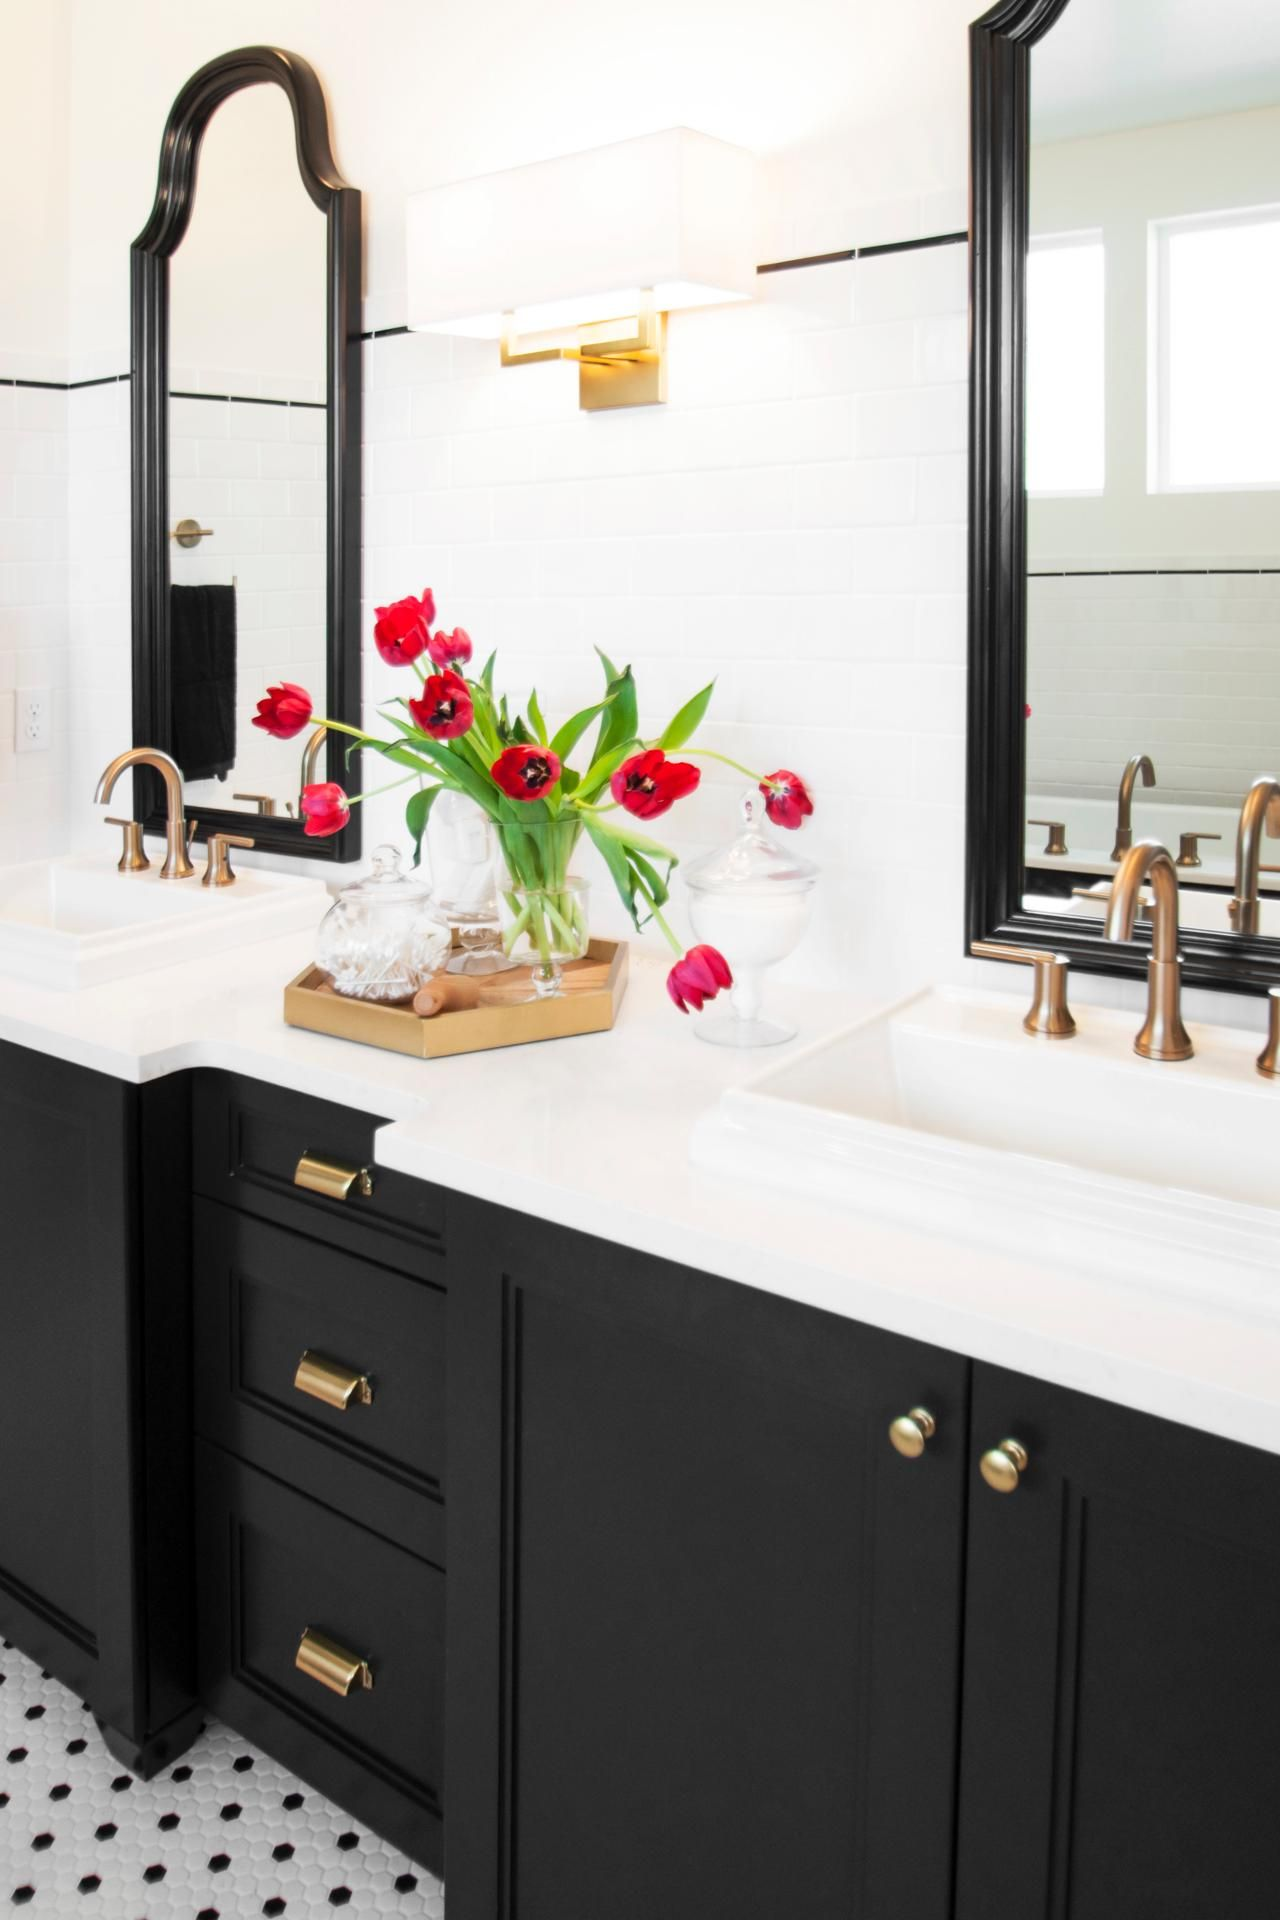 Bathroom Vanity Decor Style Suitors Why Black And White Tile Should Stay Married